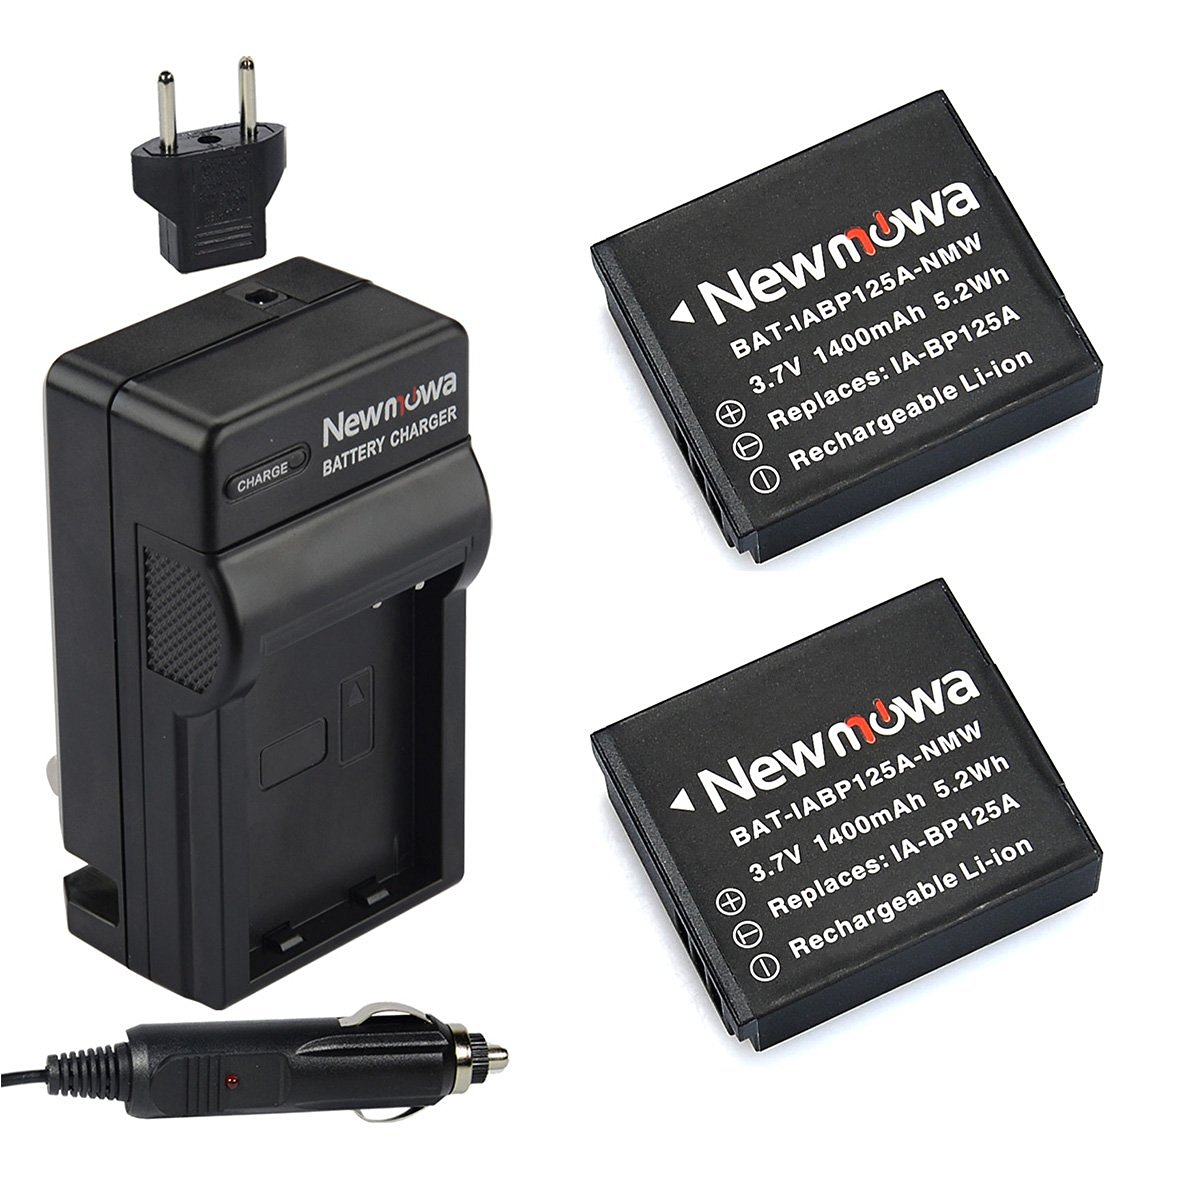 Newmowa IA-BP125A Battery (2-Pack) and Charger kit for Samsung BP125A, IA-BP125A and Samsung HMX-M20, HMX-Q10, HMX-Q11, HMX-Q20, HMX-Q100, HMX-Q130, HMX-QF20, HMX-QF30, HMX-T10